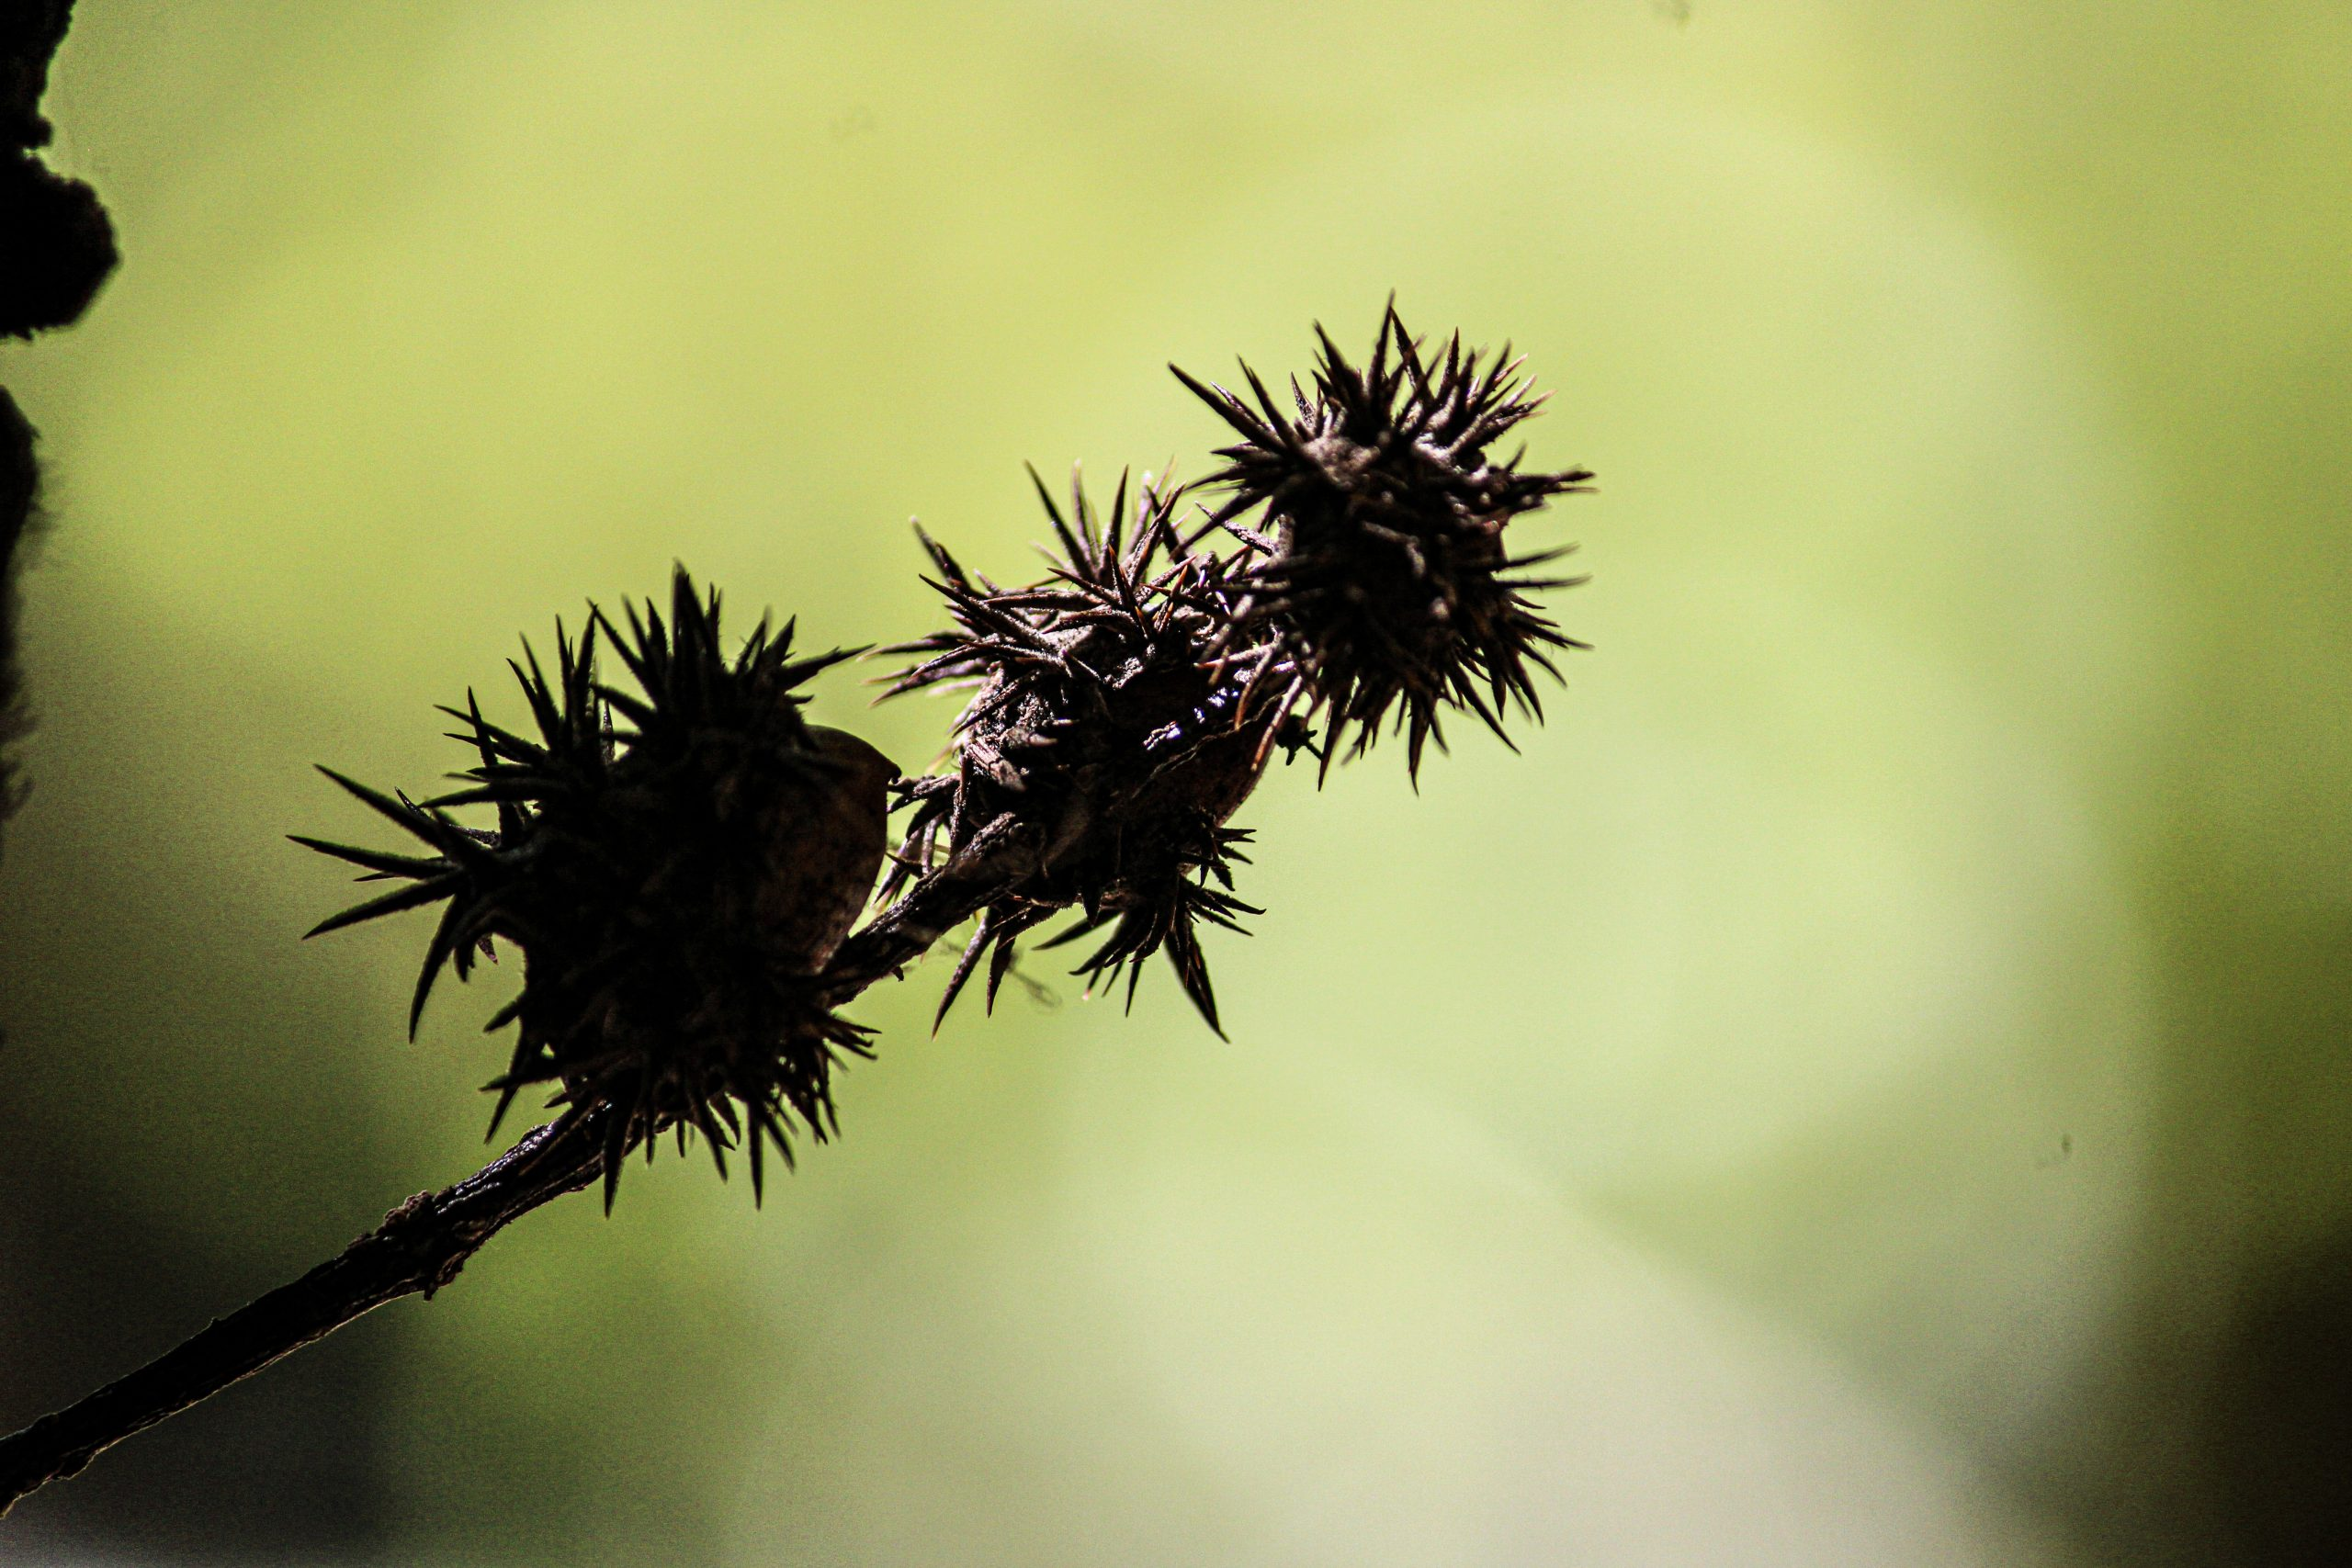 Thorny fruit of a plant